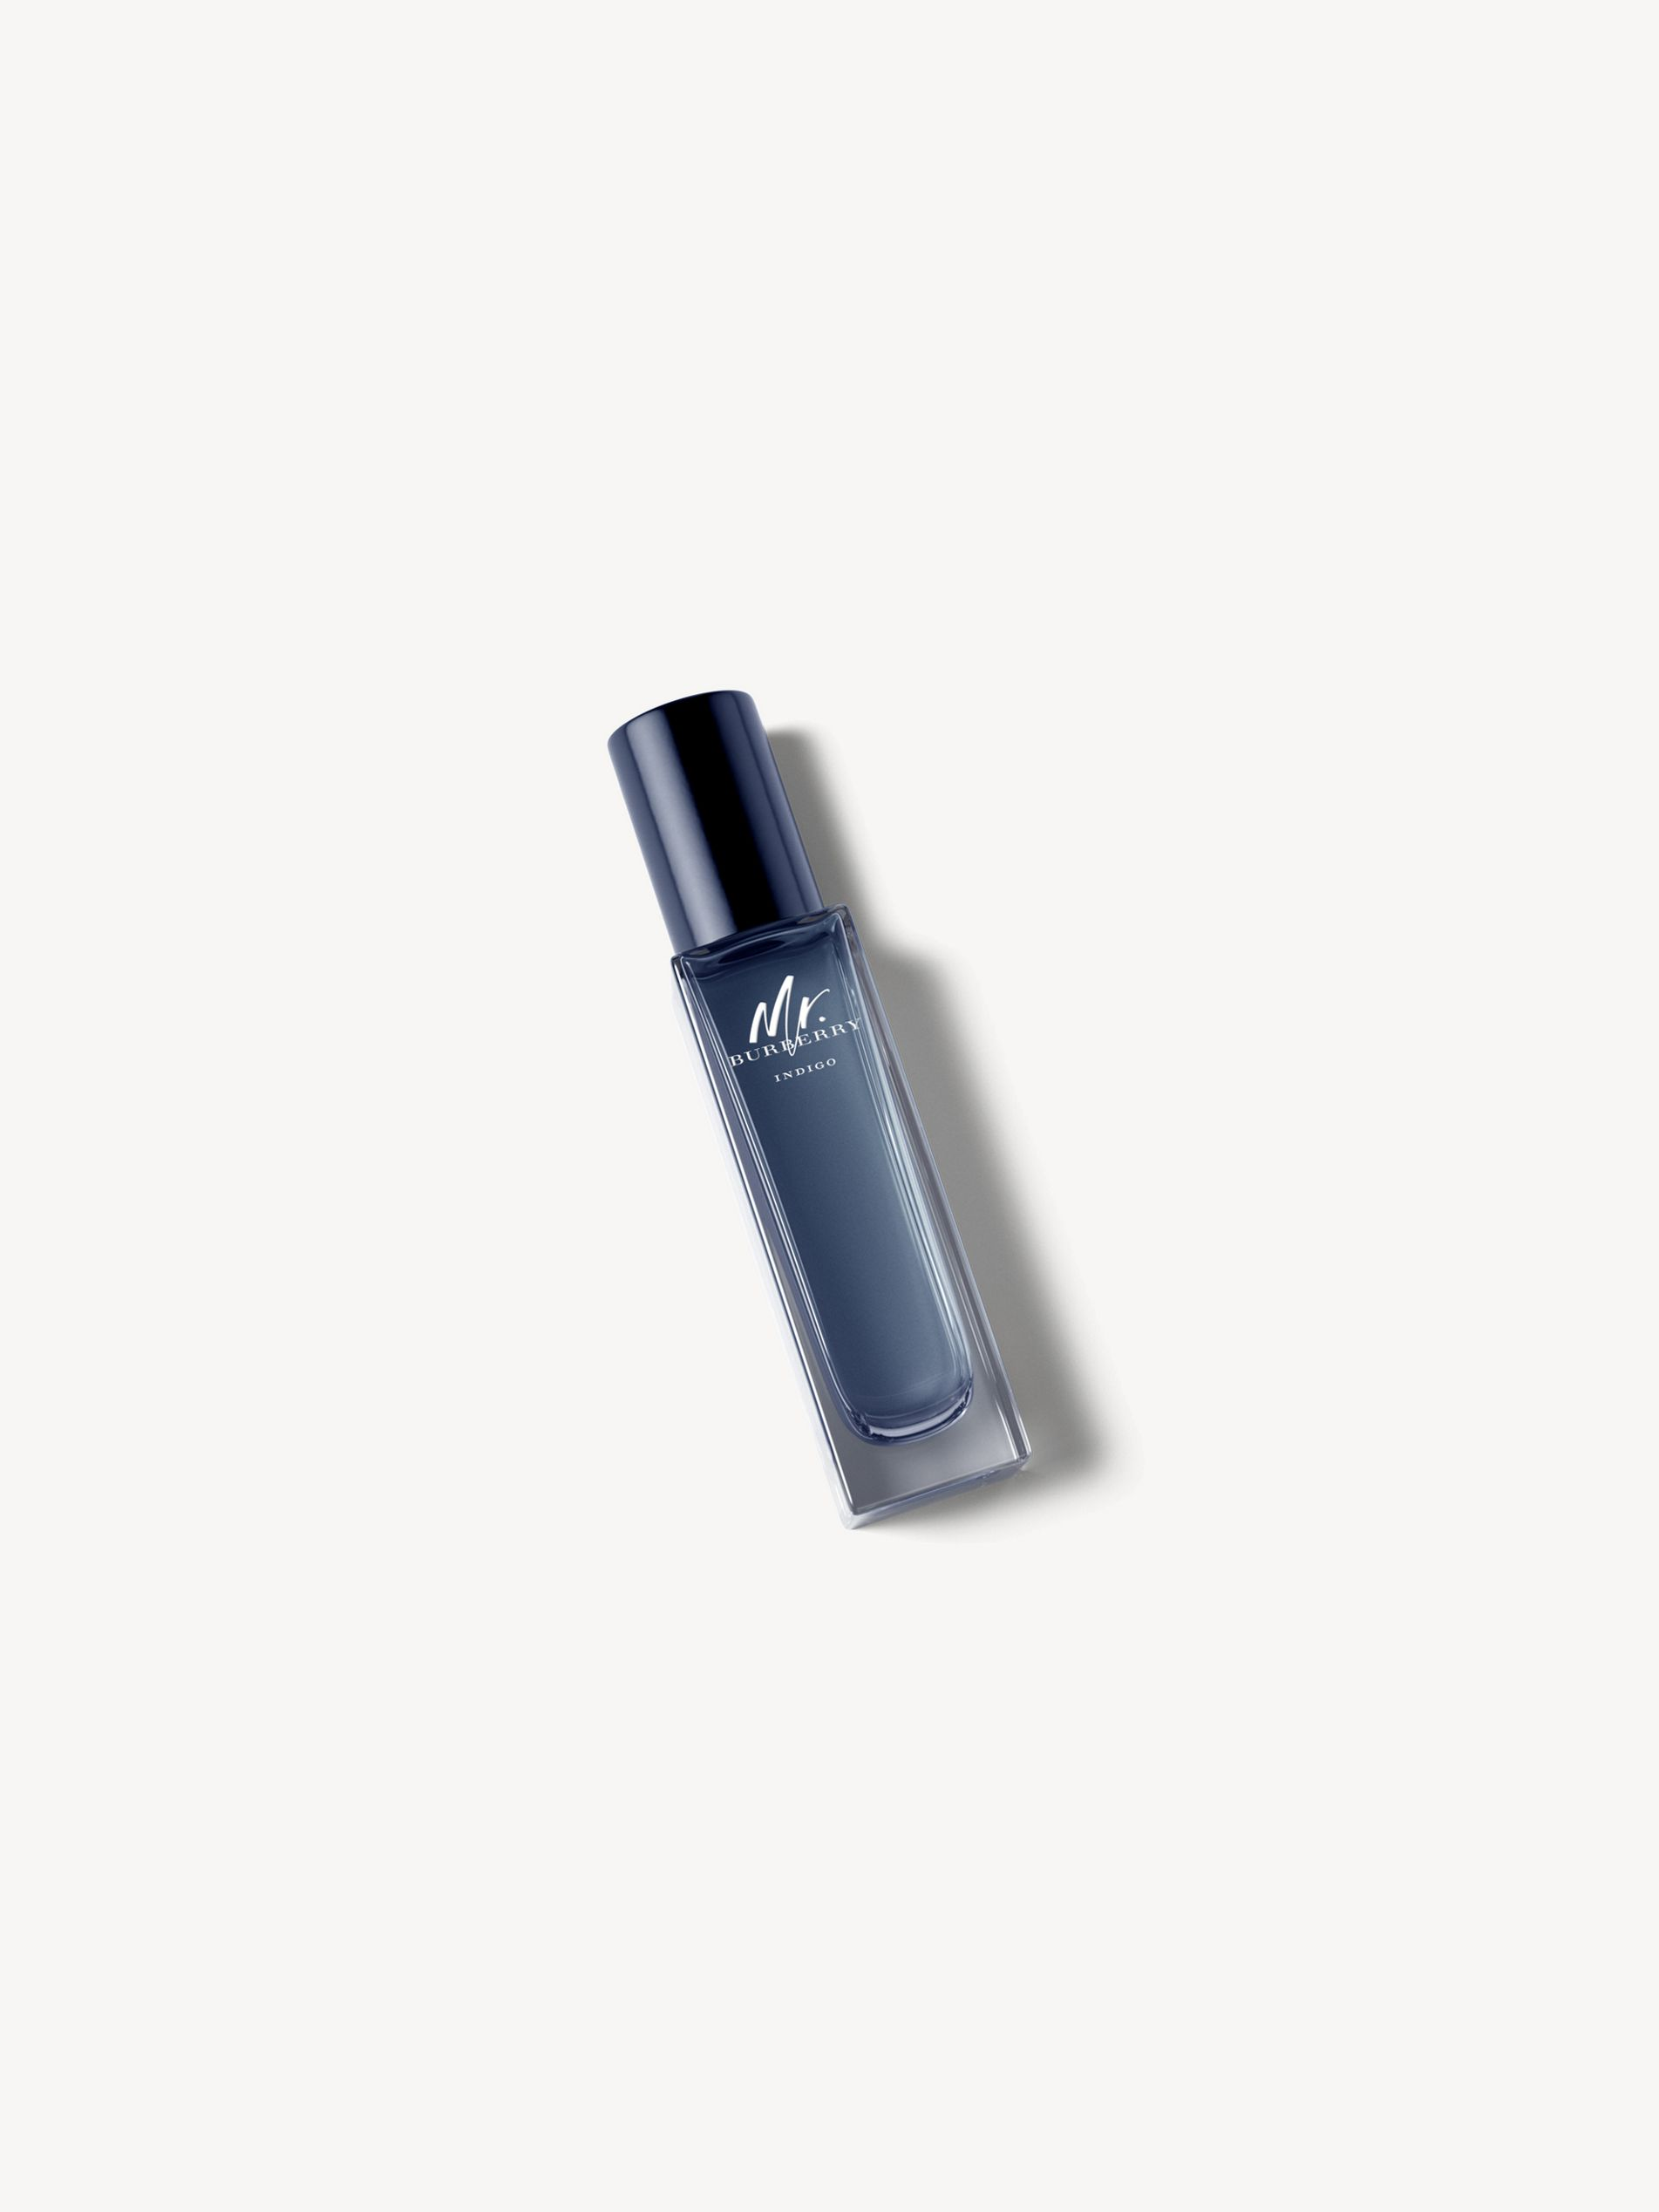 Mr. Burberry Indigo 博柏利先生靛蓝男士淡香水 30ml 产品图片01